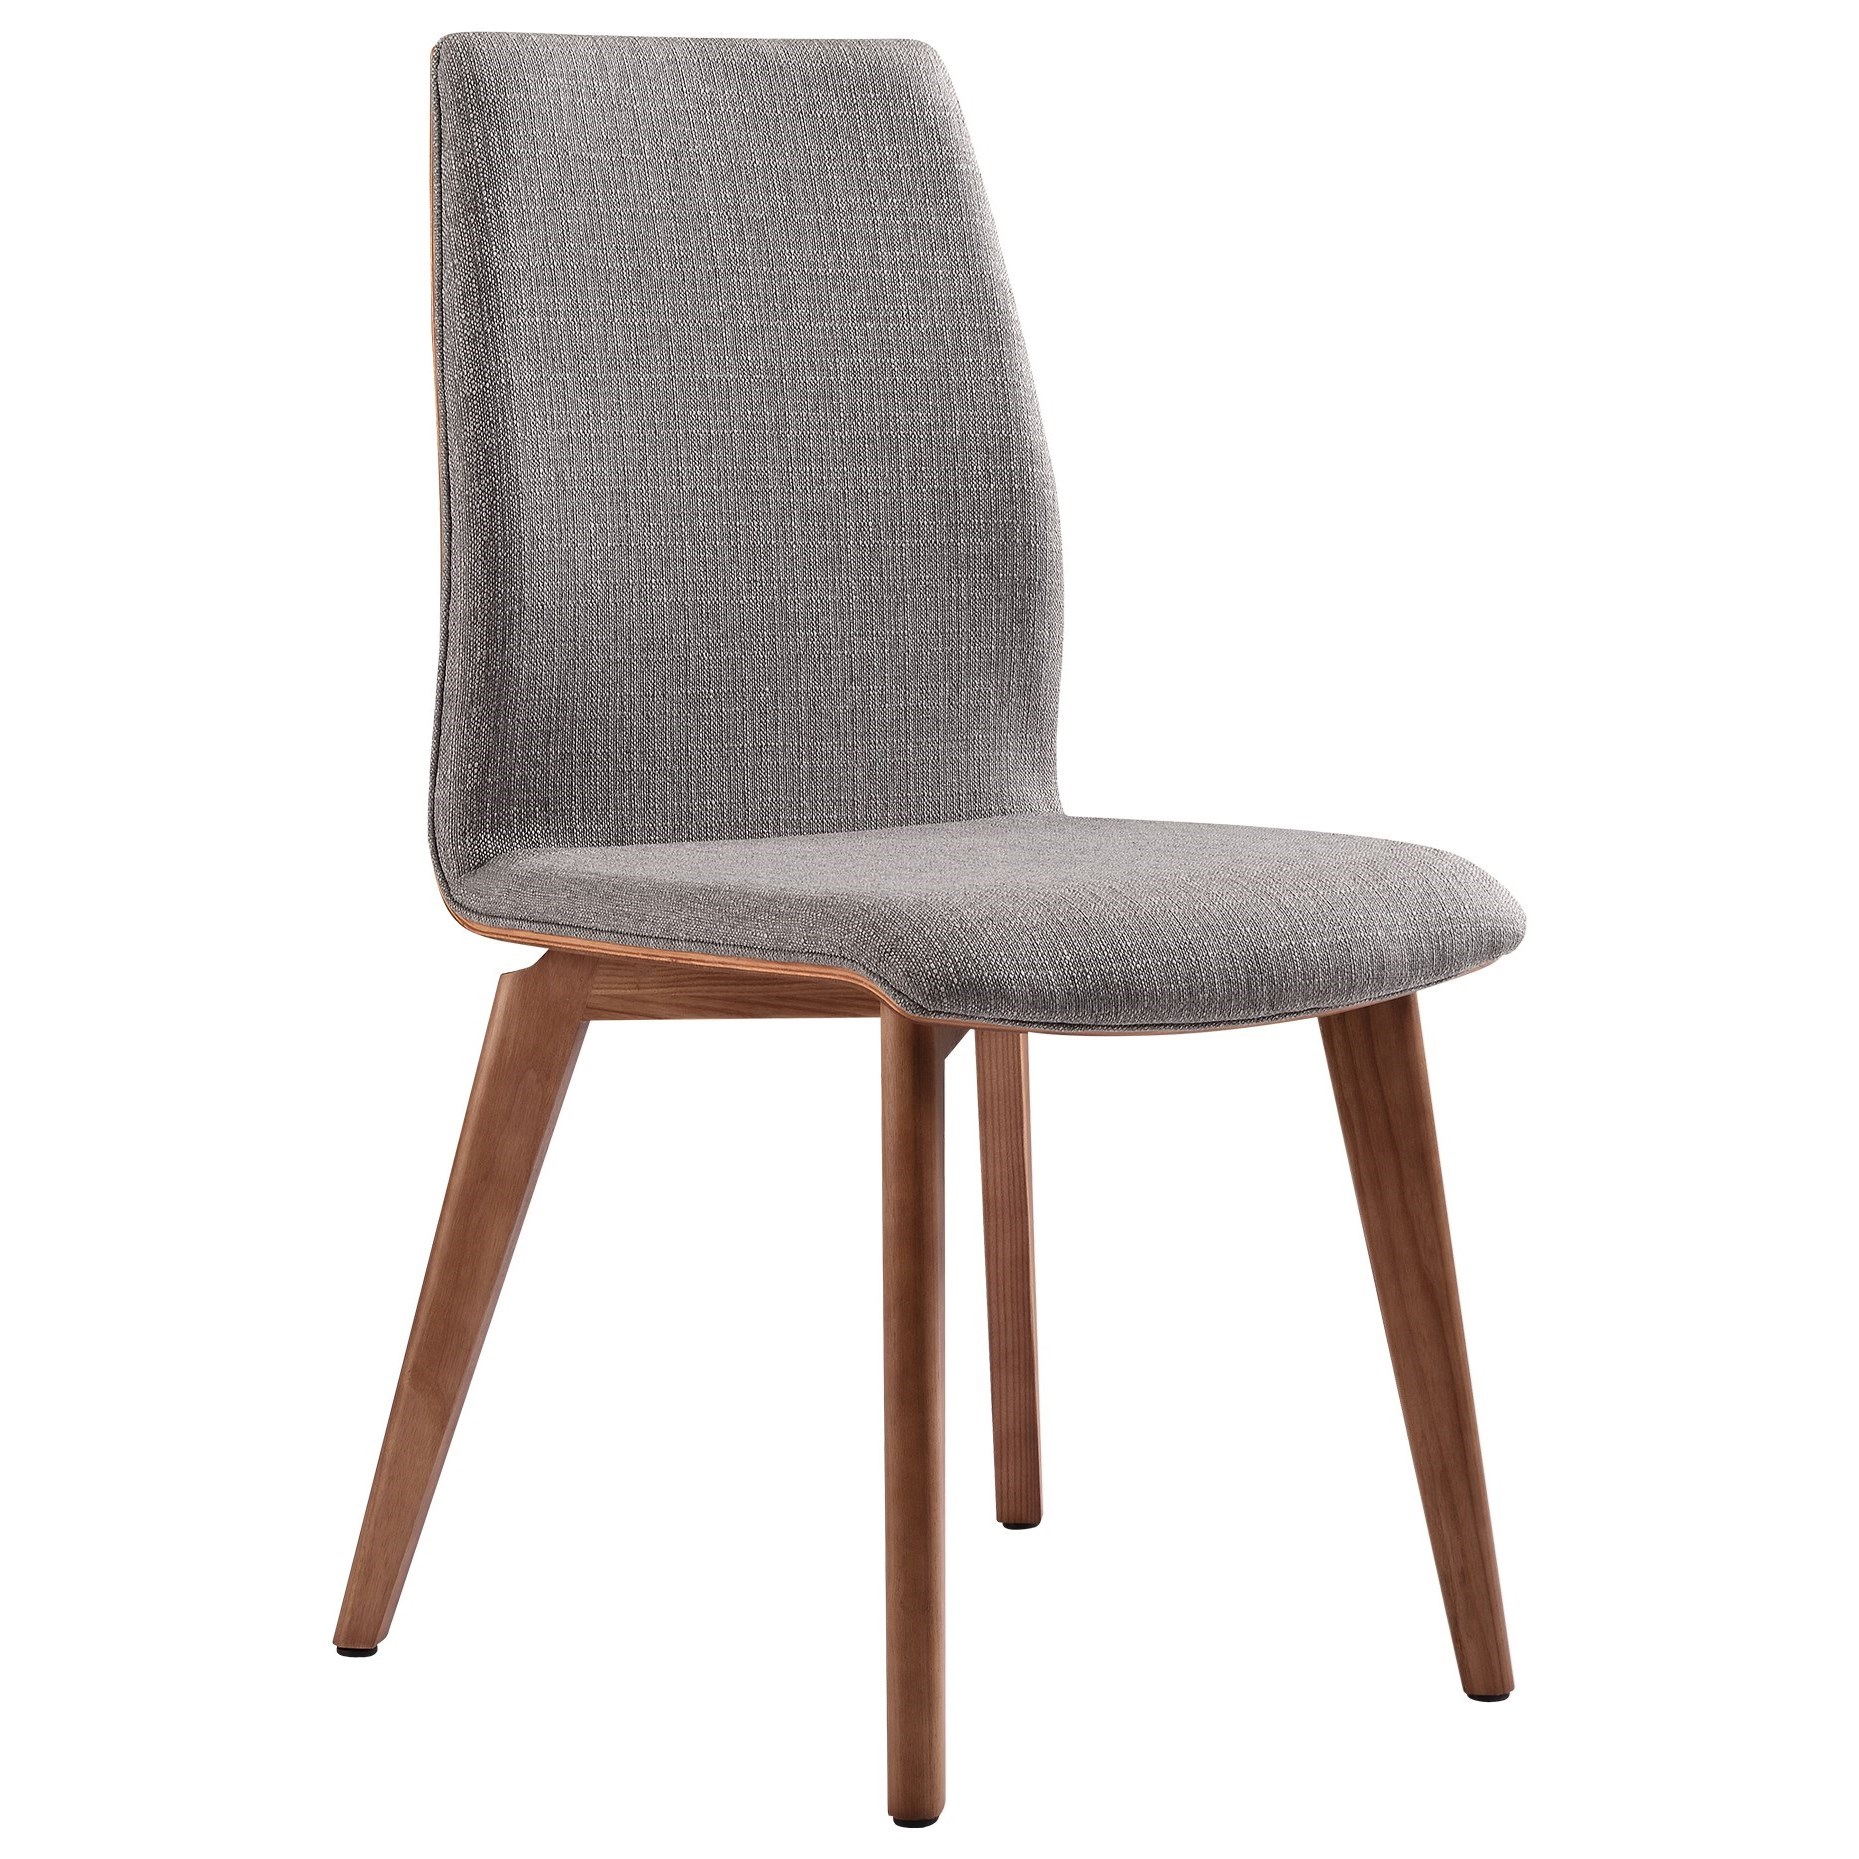 Mid-Century Dining Chairs - Set of 2